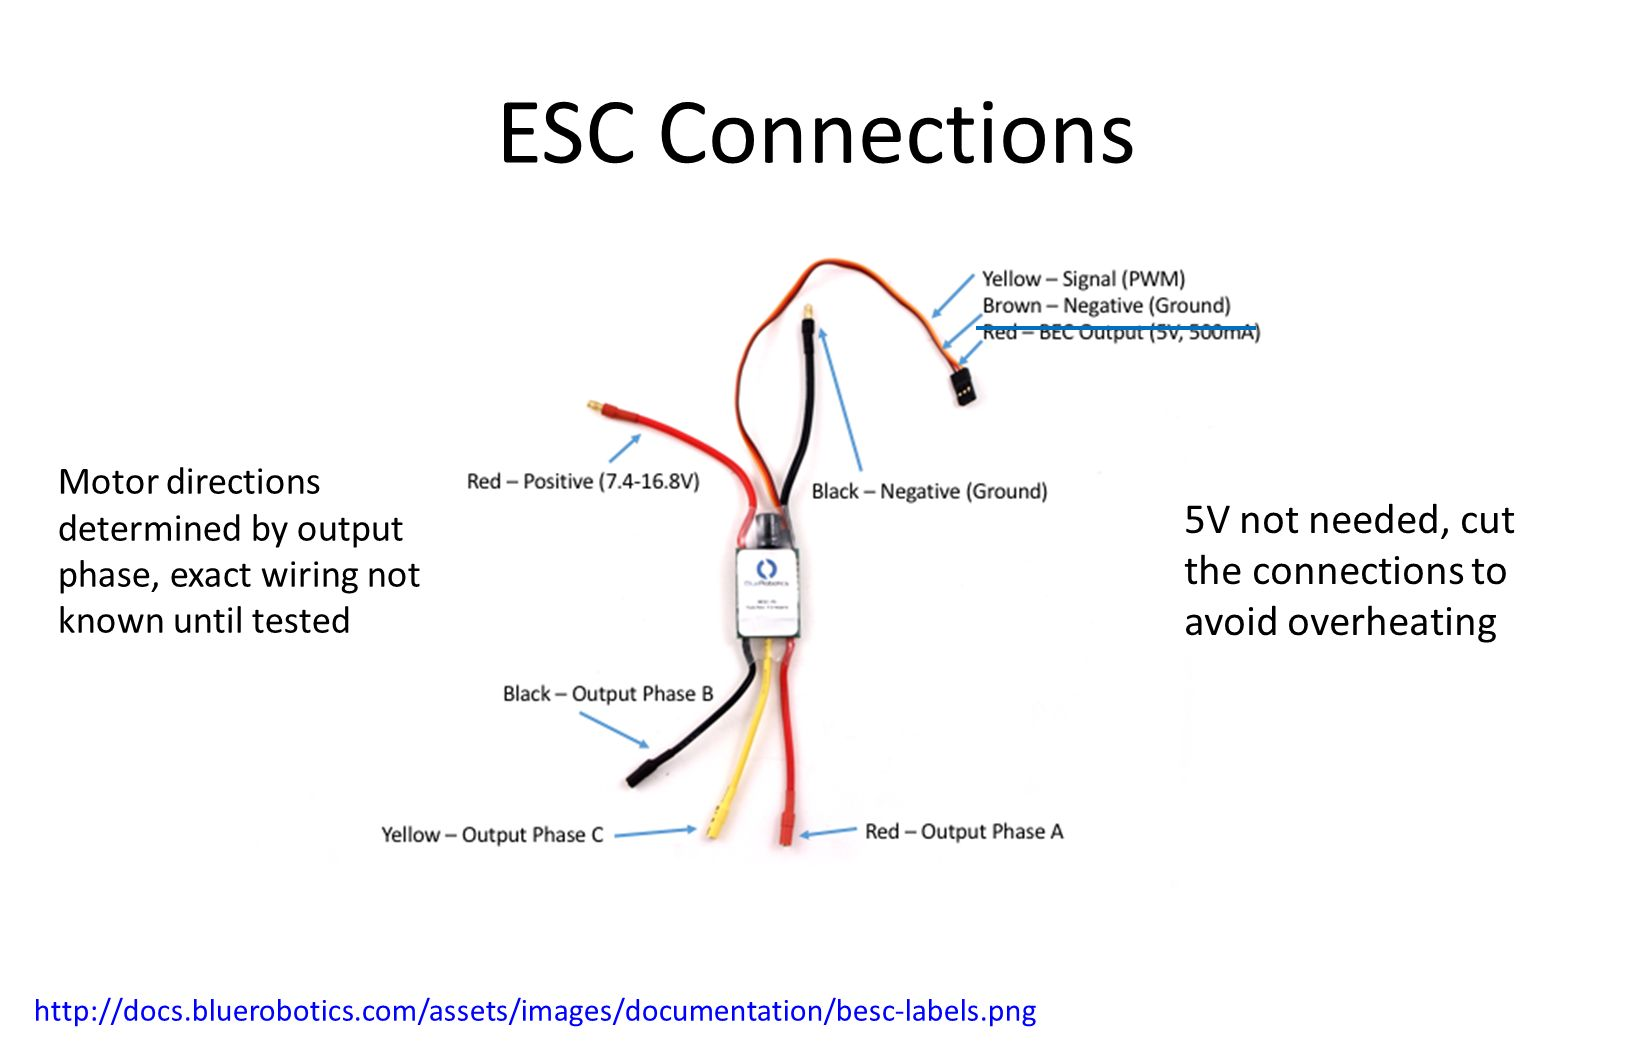 Esc Module Wiring Best Electrical Circuit Diagram Ford Bluerov Electronics And Controls Documentation Ppt Download Hobbywing Cc3d